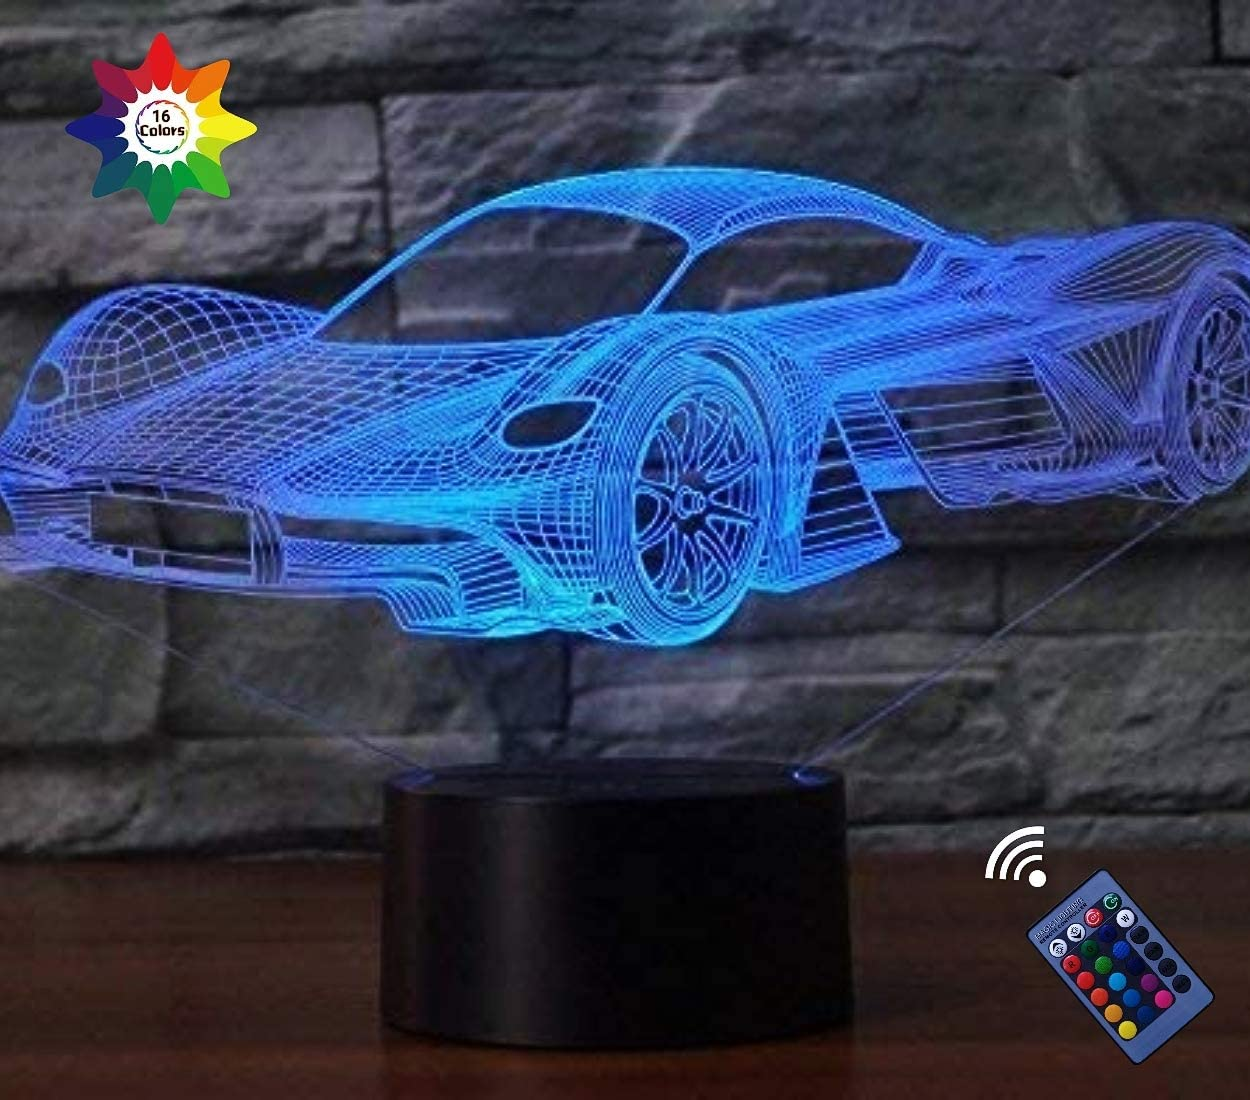 Optical Illusion 3D Car Night Light 16 Colors Changing USB Power Remote Control Touch Switch Decor Lamp LED Table Desk Lamp Children Kids Christmas Xmas Brithday Gift